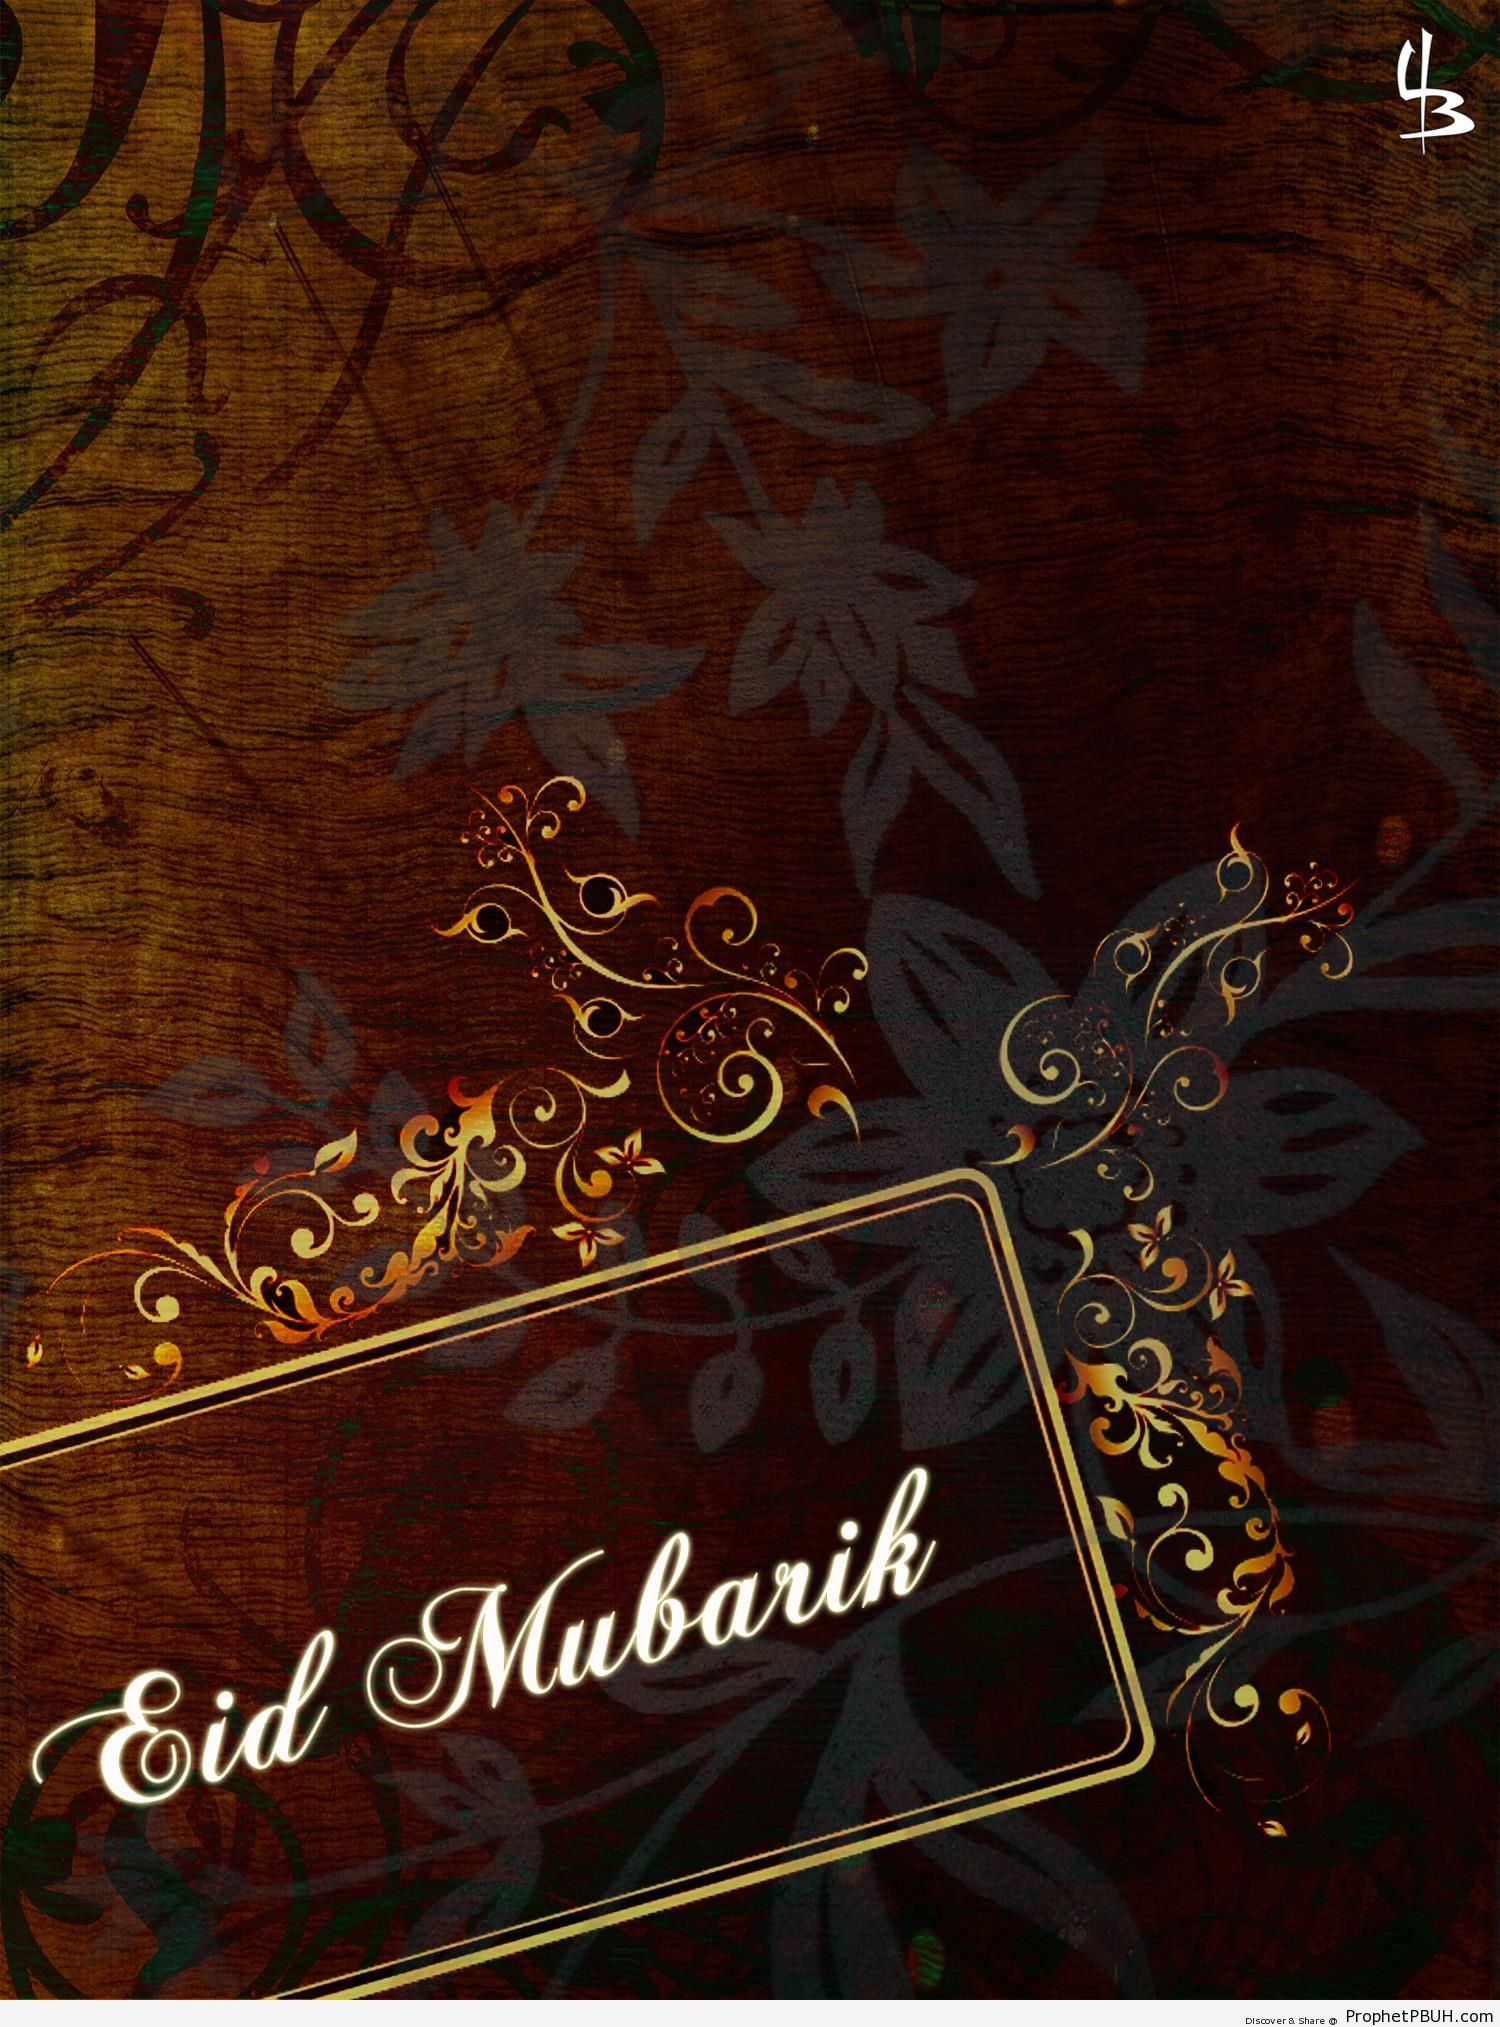 Eid Mubarak Greeting in Gold Frame with Simple Pretty Designs on Brown Backround - Eid Mubarak Greeting Cards, Graphics, and Wallpapers -